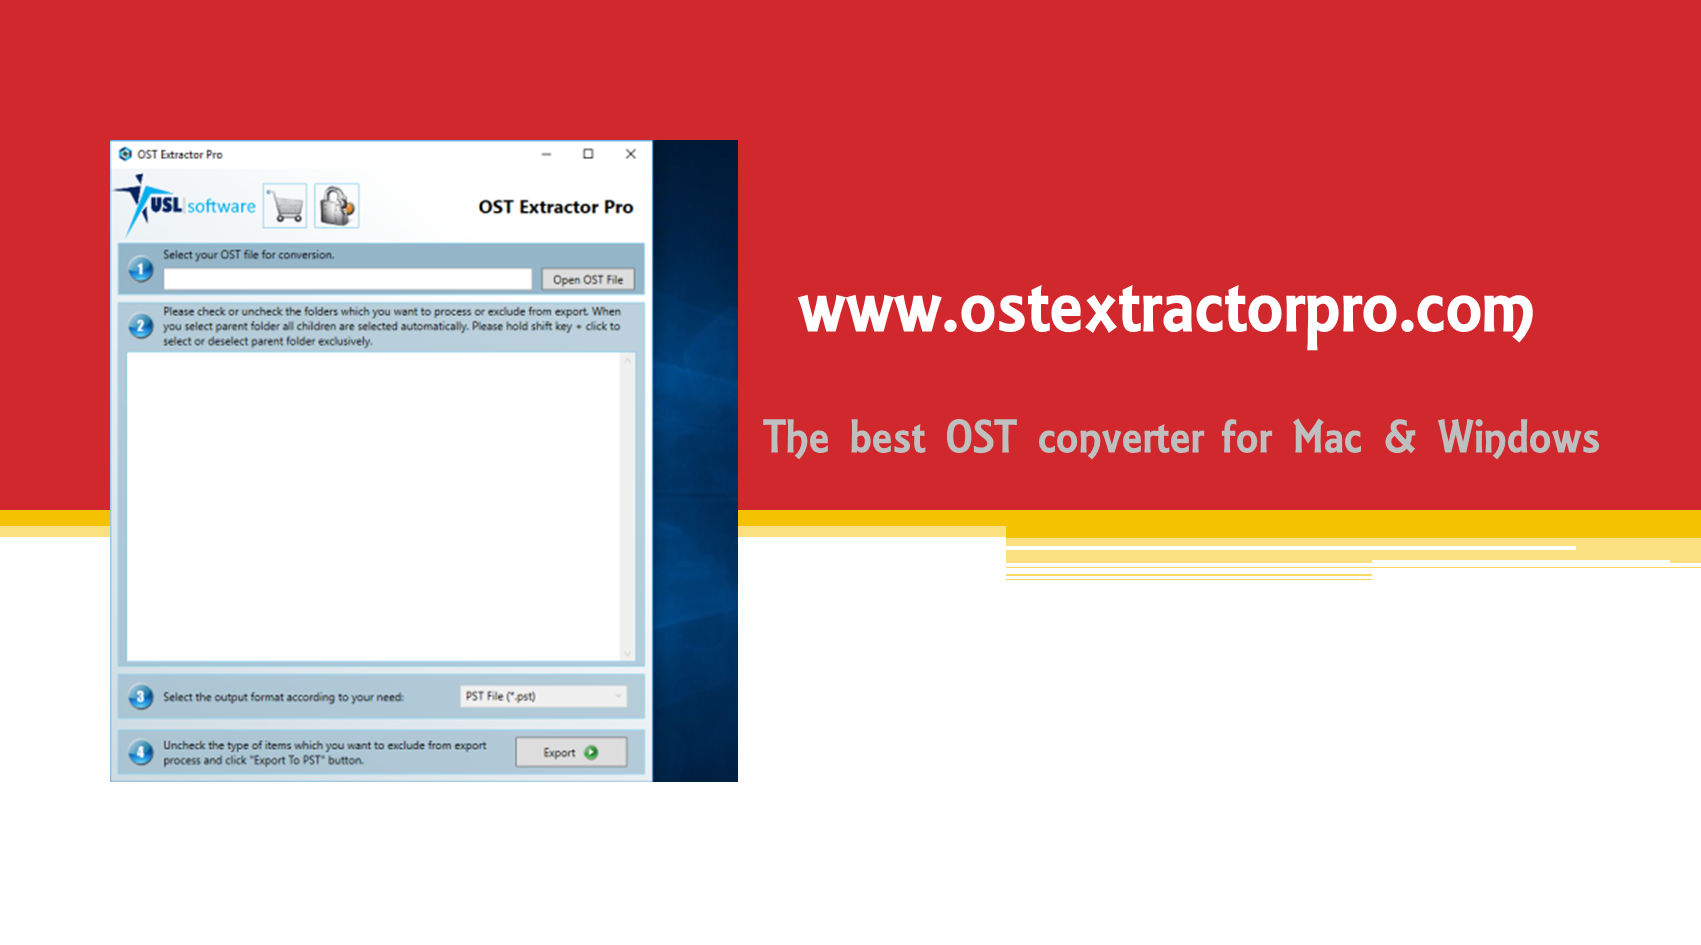 Hack the basic skills to export OST to EML with the help of OST Extractor Pro